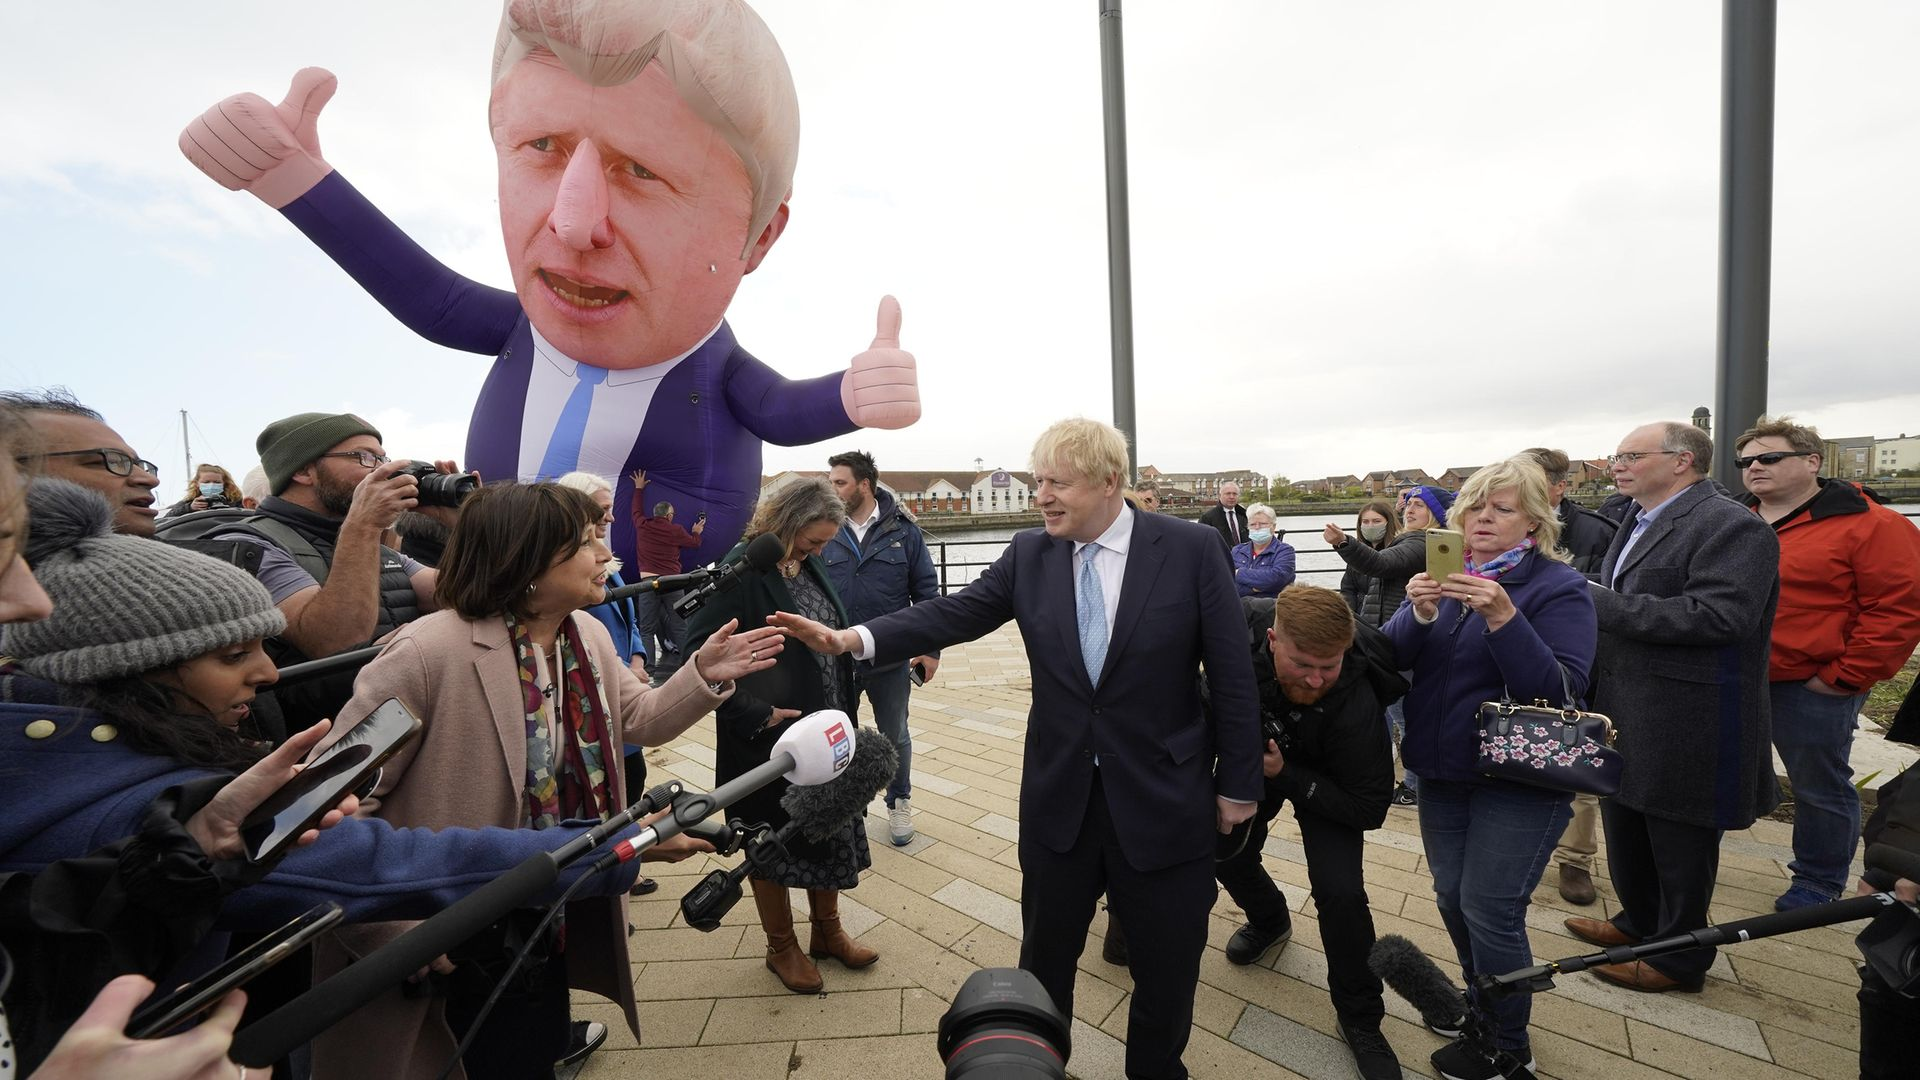 Prime Minister Boris Johnson at Jacksons Wharf in Hartlepool, County Durham, following MP Jill Mortimer's victory in the Hartlepool parliamentary by-election - Credit: PA